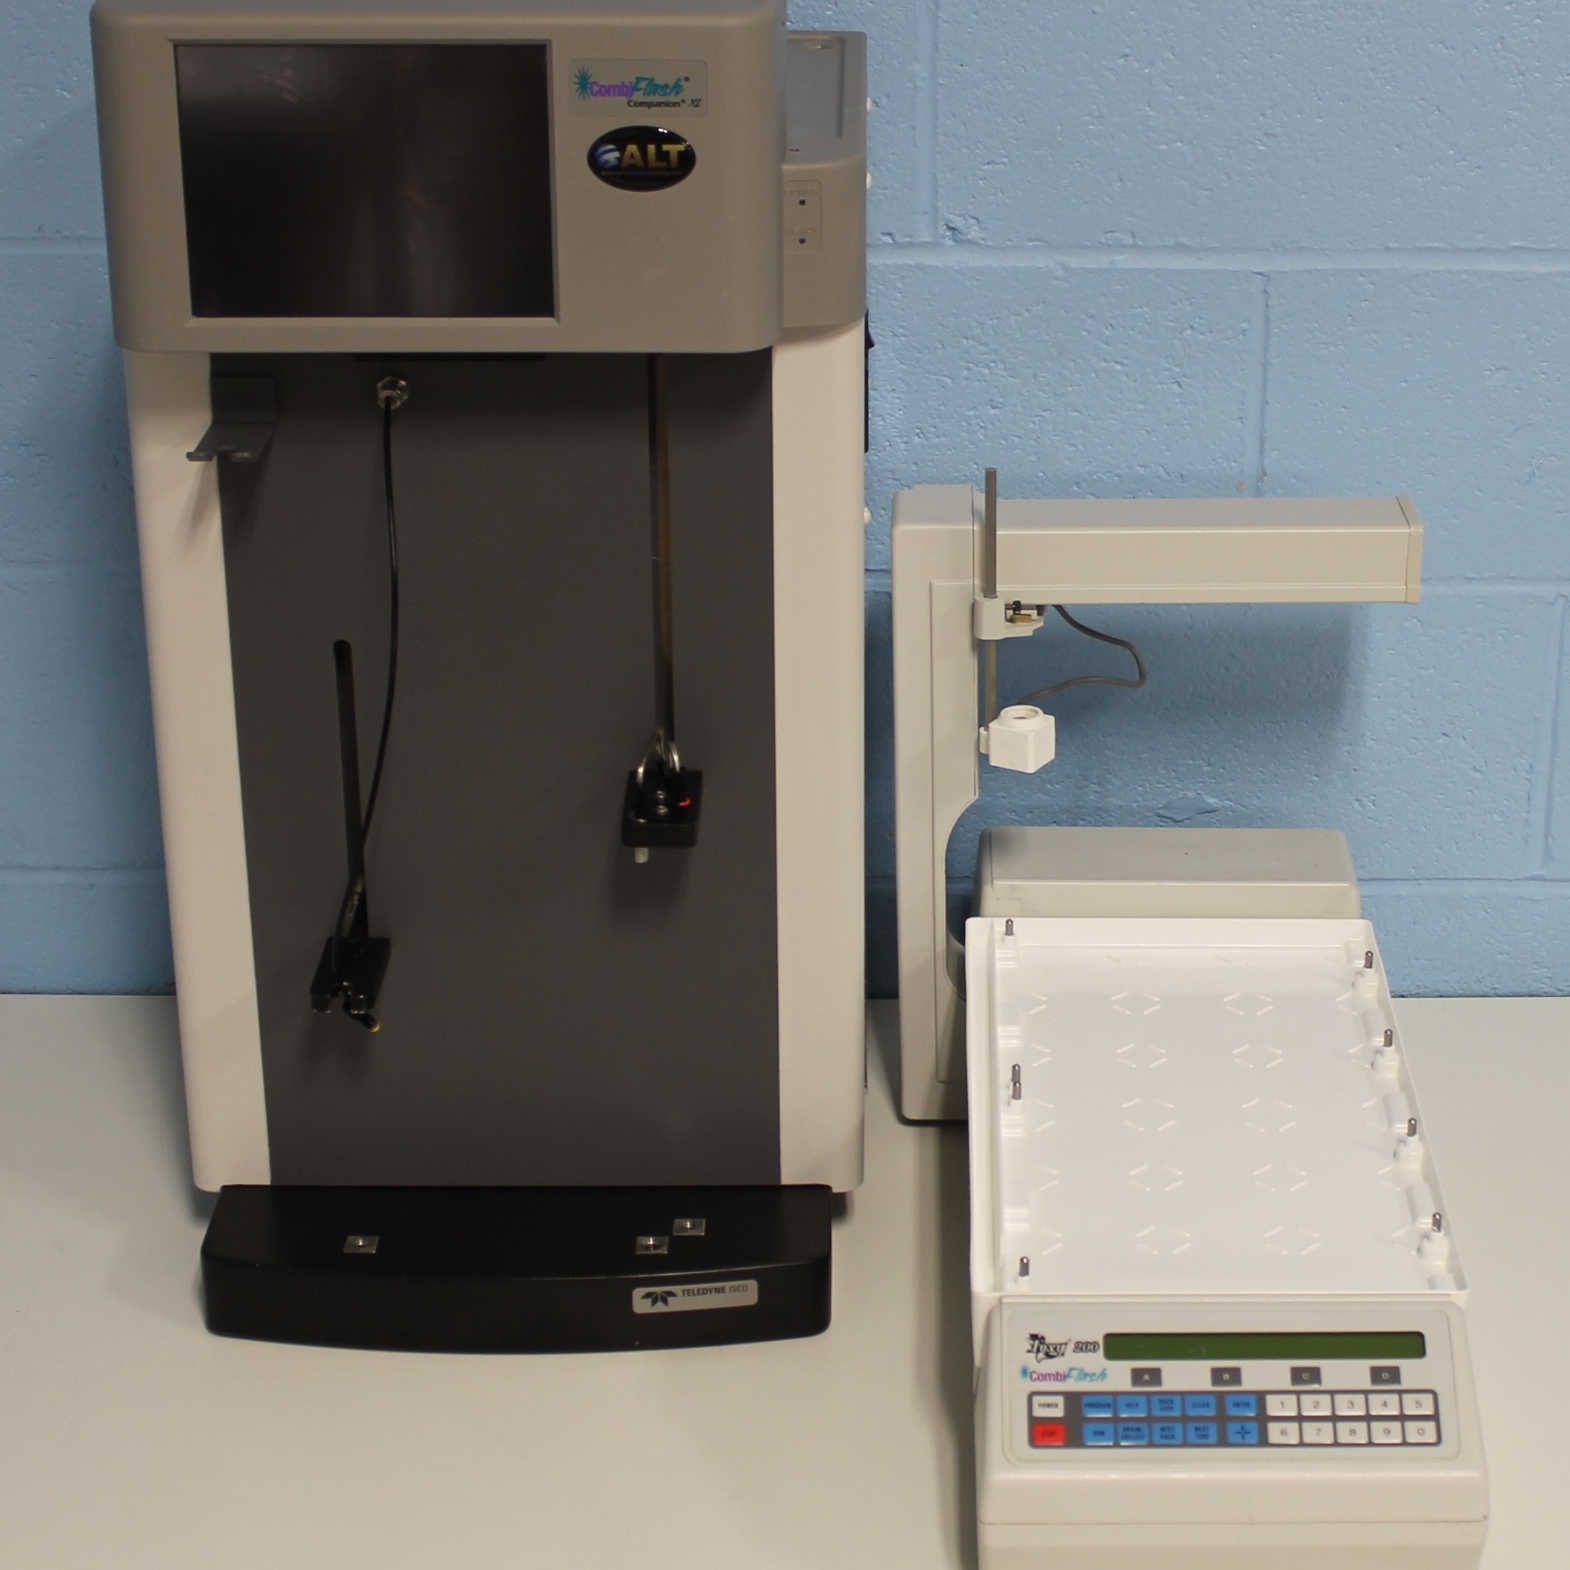 Combiflash Companion XL Flash Chromatography System Name